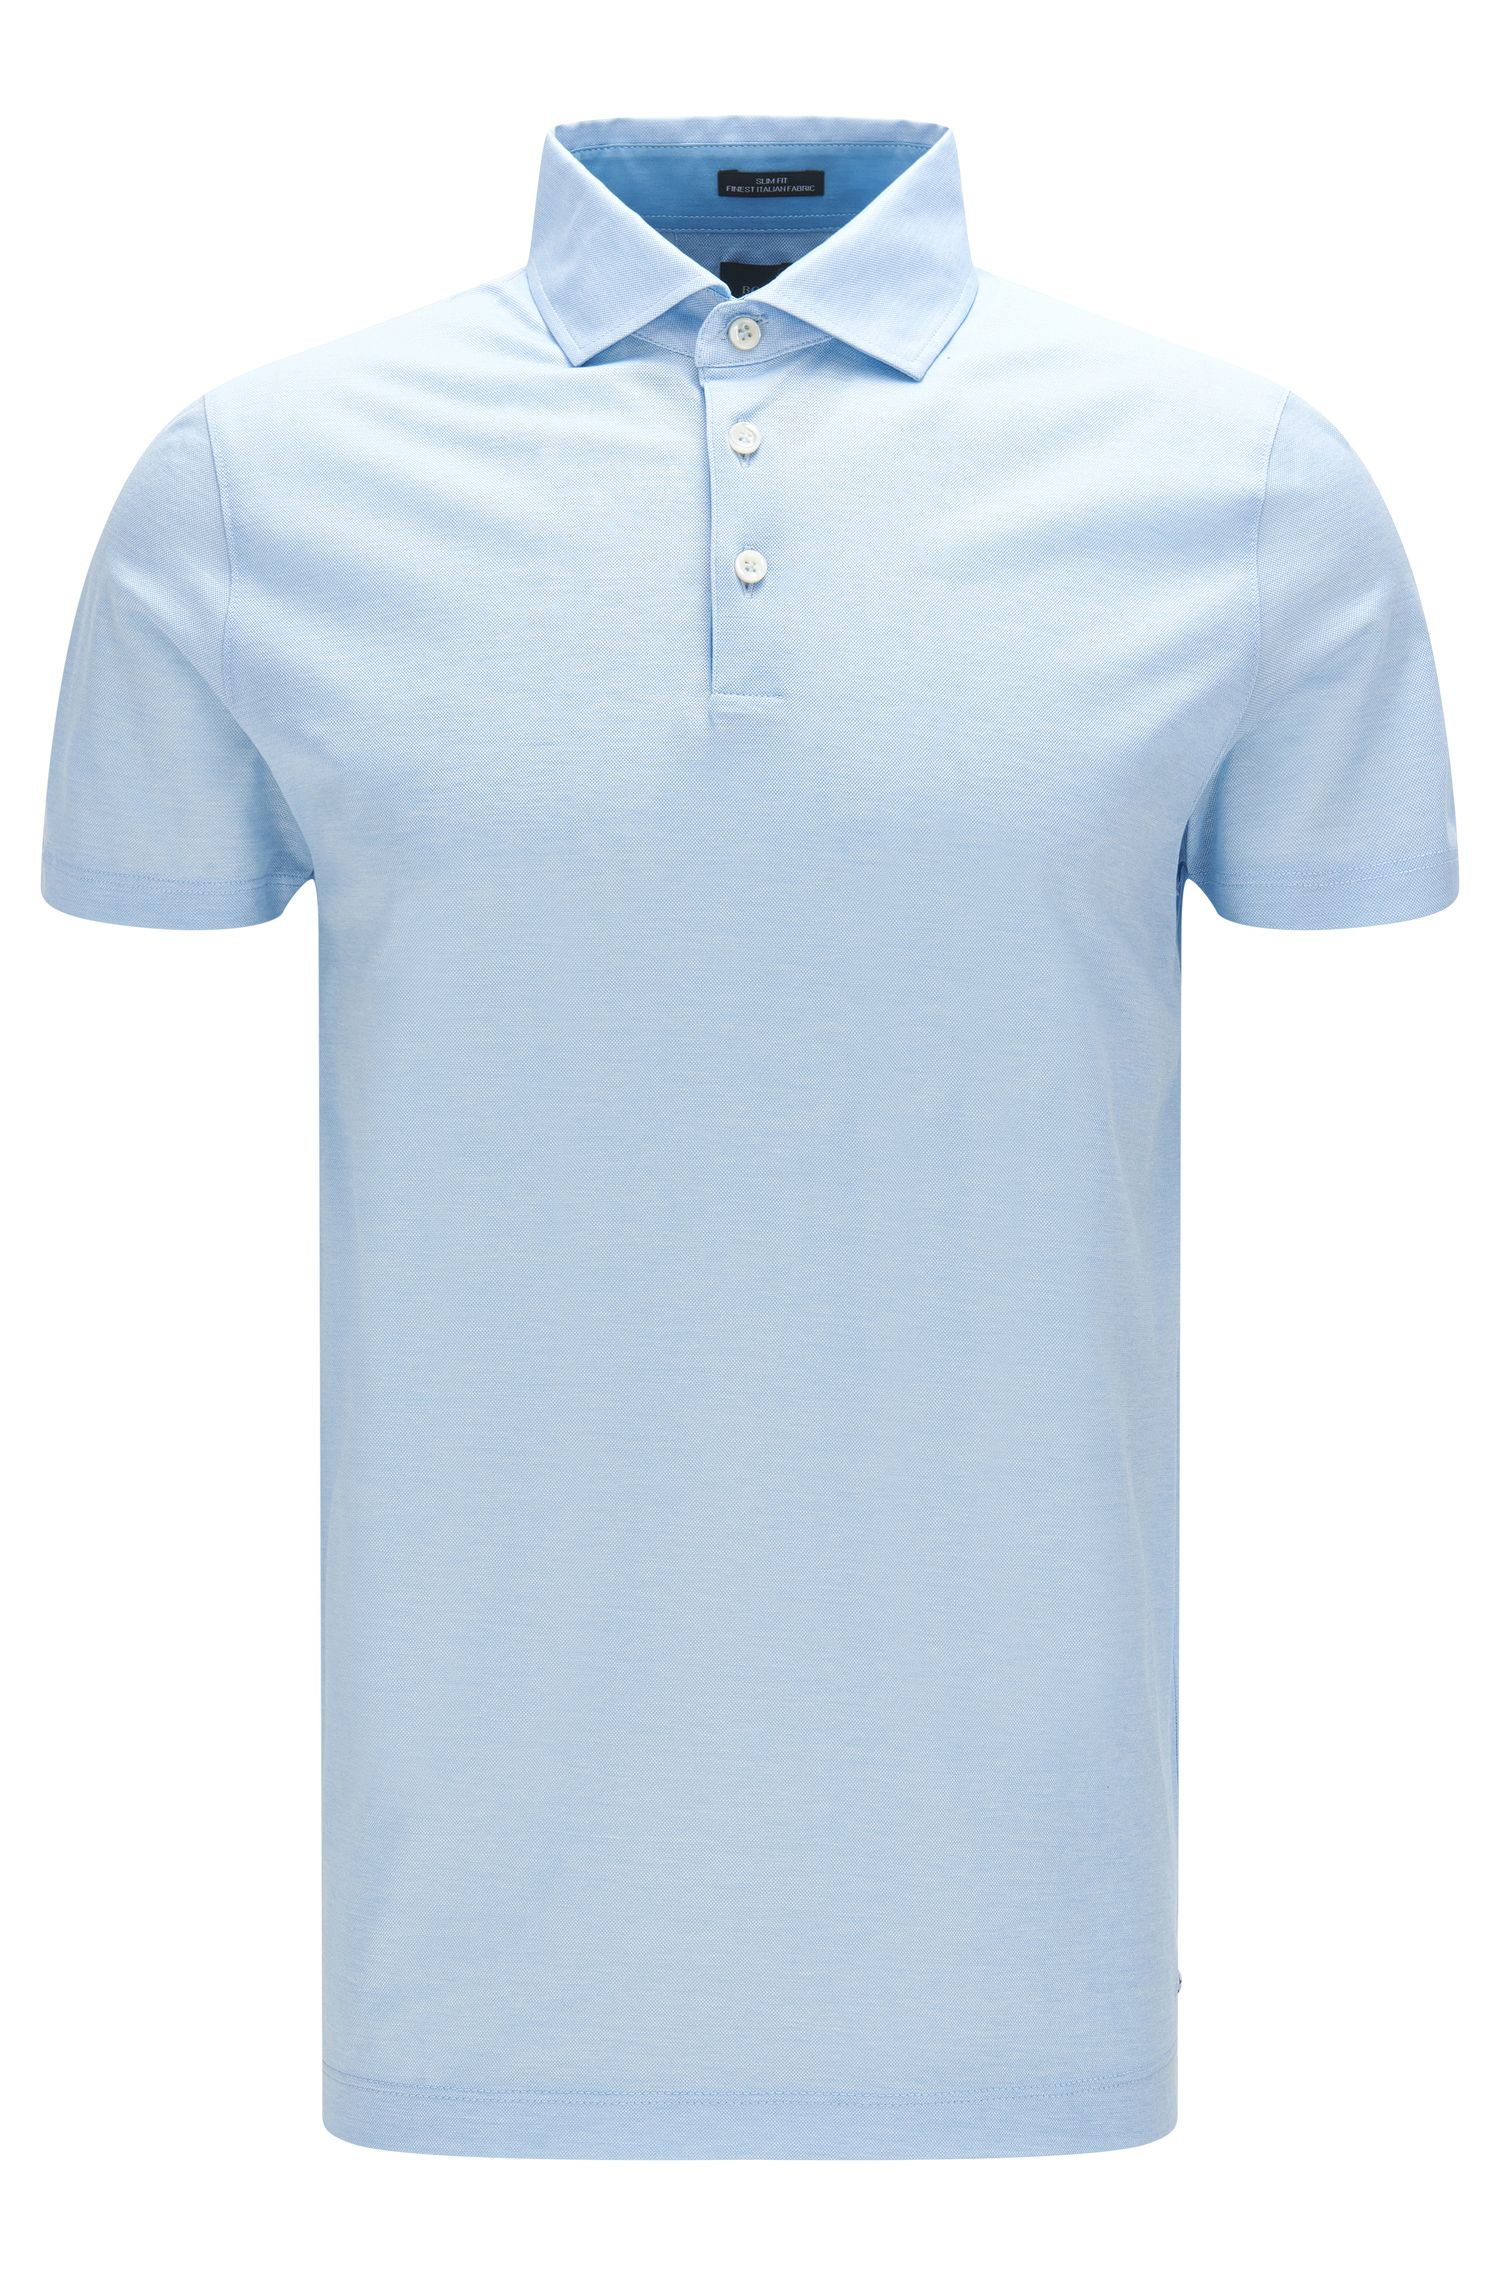 Italian Cotton Jacquard Polo Shirt, Slim Fit | T-Pryde